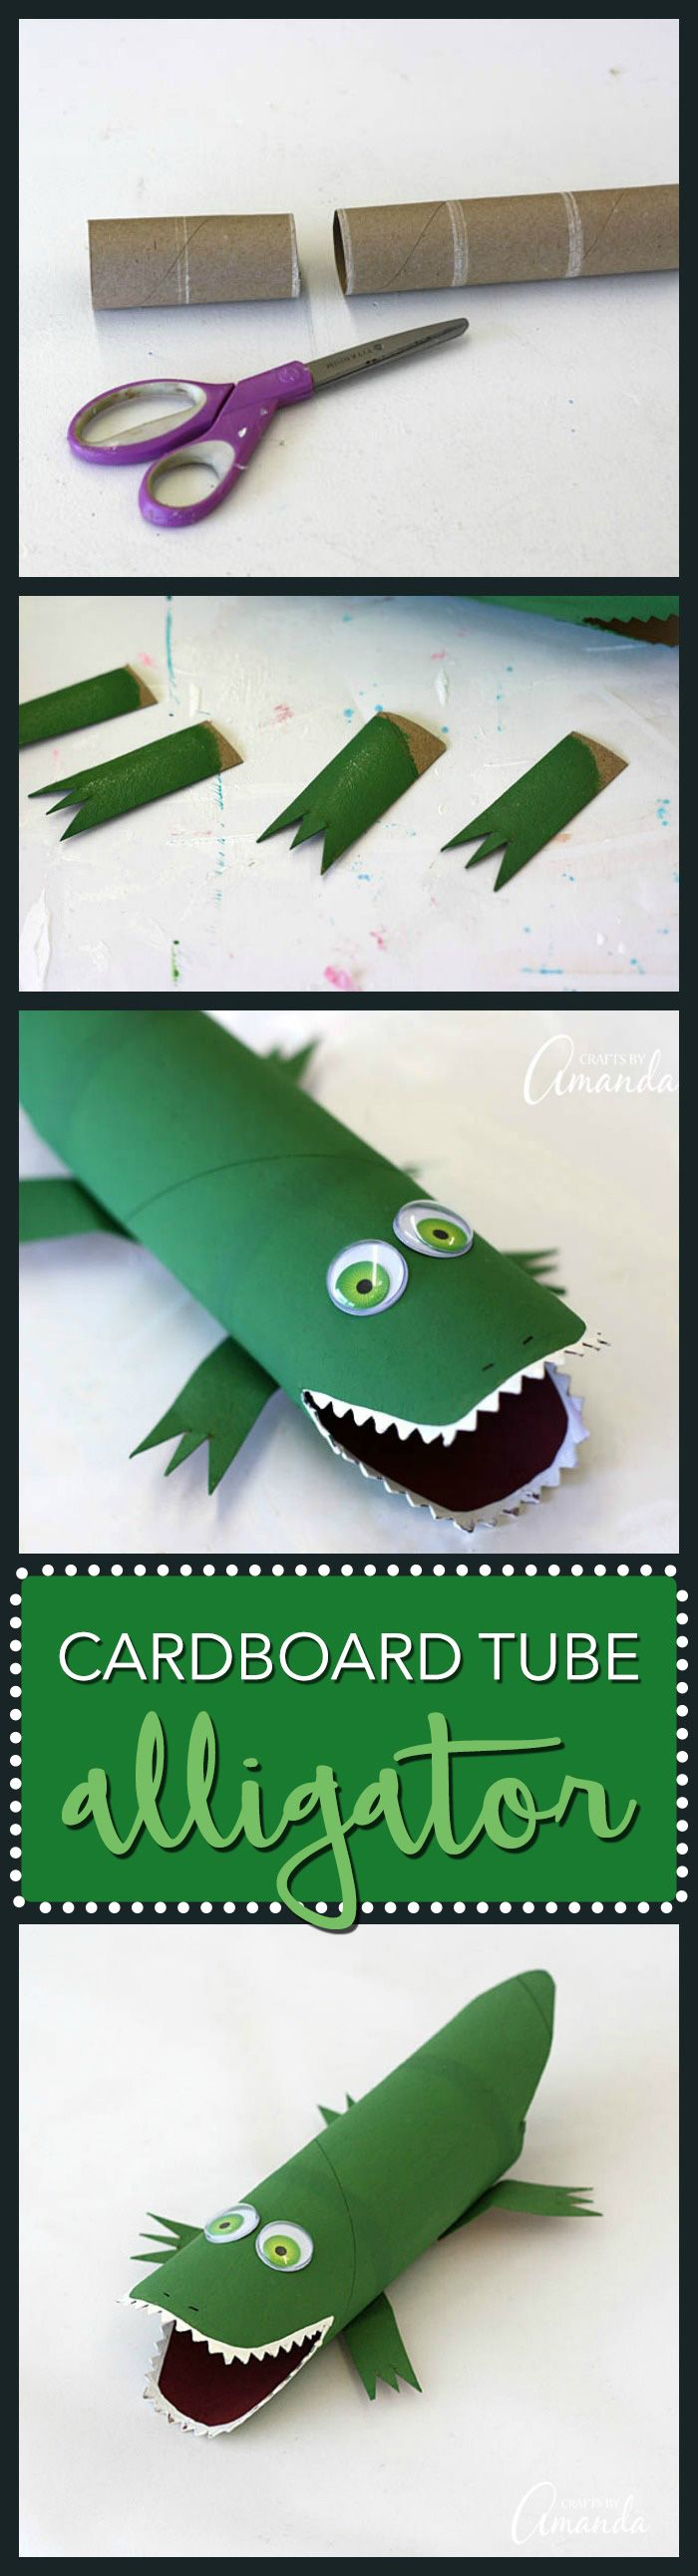 Cardboard Tube Alligator: make this cute alligator from a paper towel roll - Cardboard roll crafts are tons of fun and this cardboard tube alligator is no exception. This cute alligator craft will be lots of fun for the kids!